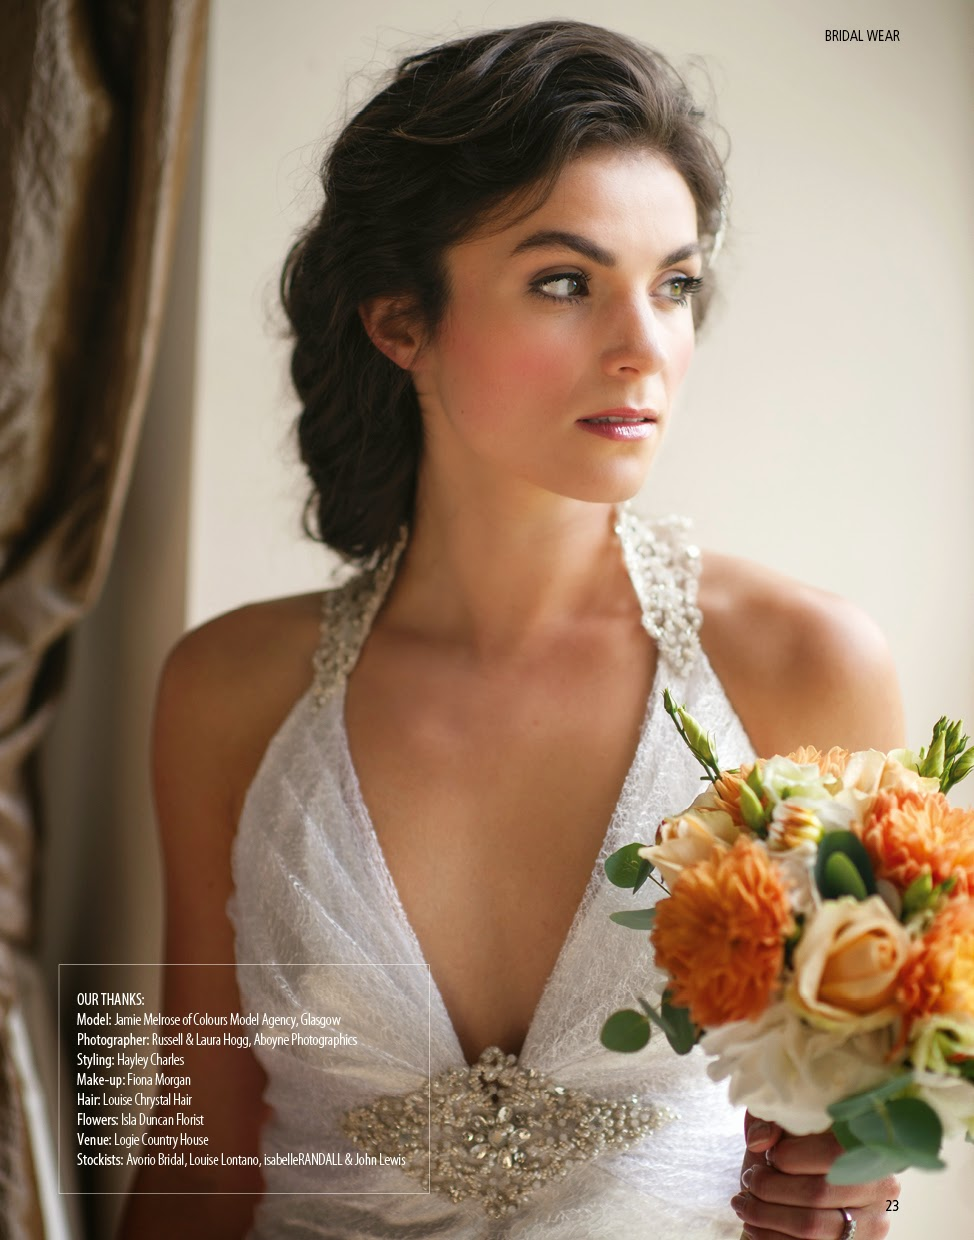 loosely braided and pinned up bridal hairstyle for a natural romantic wedding